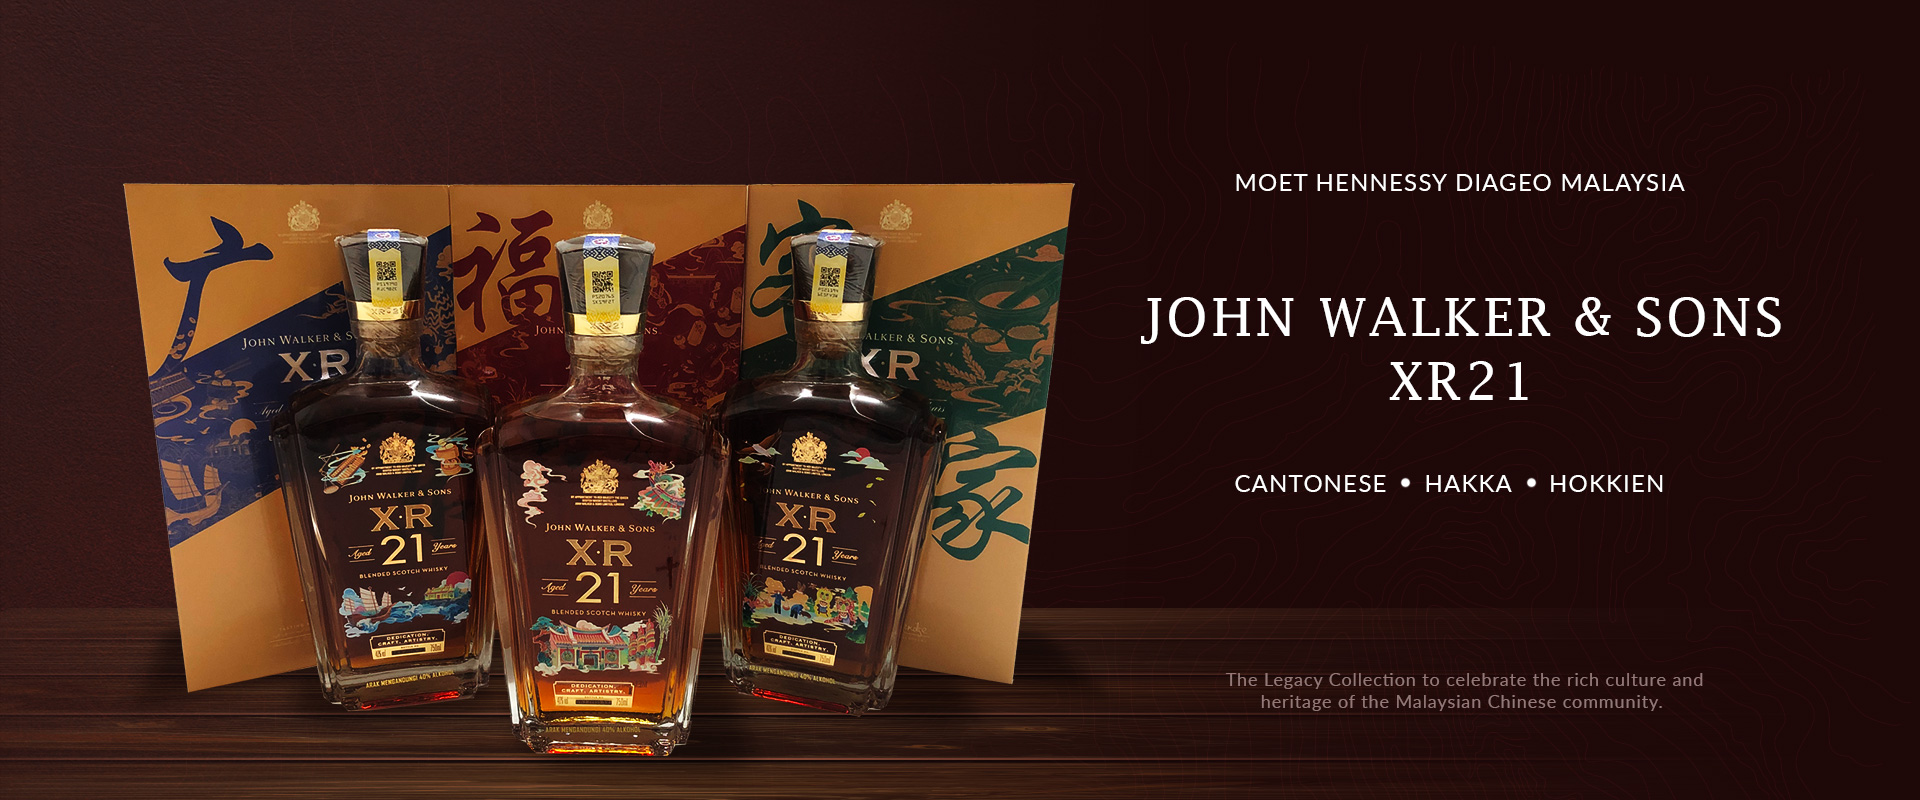 Jon Walker & Sons XR 21 Chinese Dialect Collection